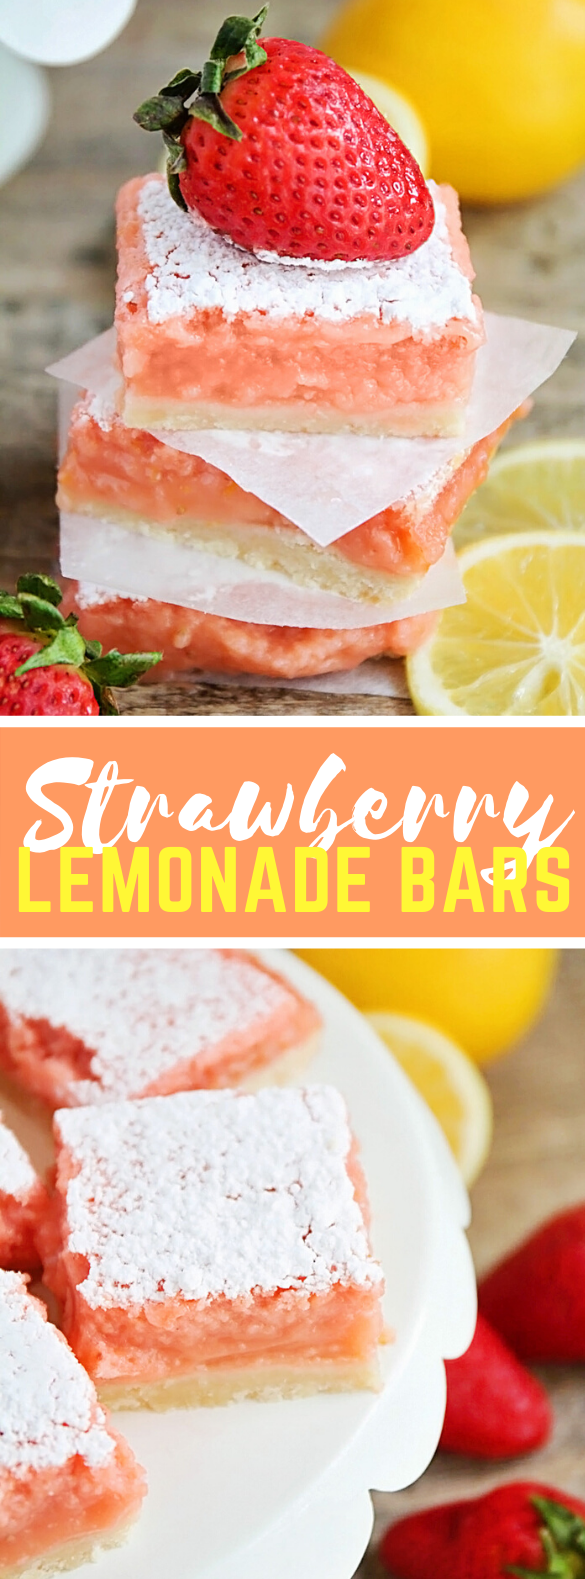 Strawberry Lemonade Bars #desserts #summerdessert